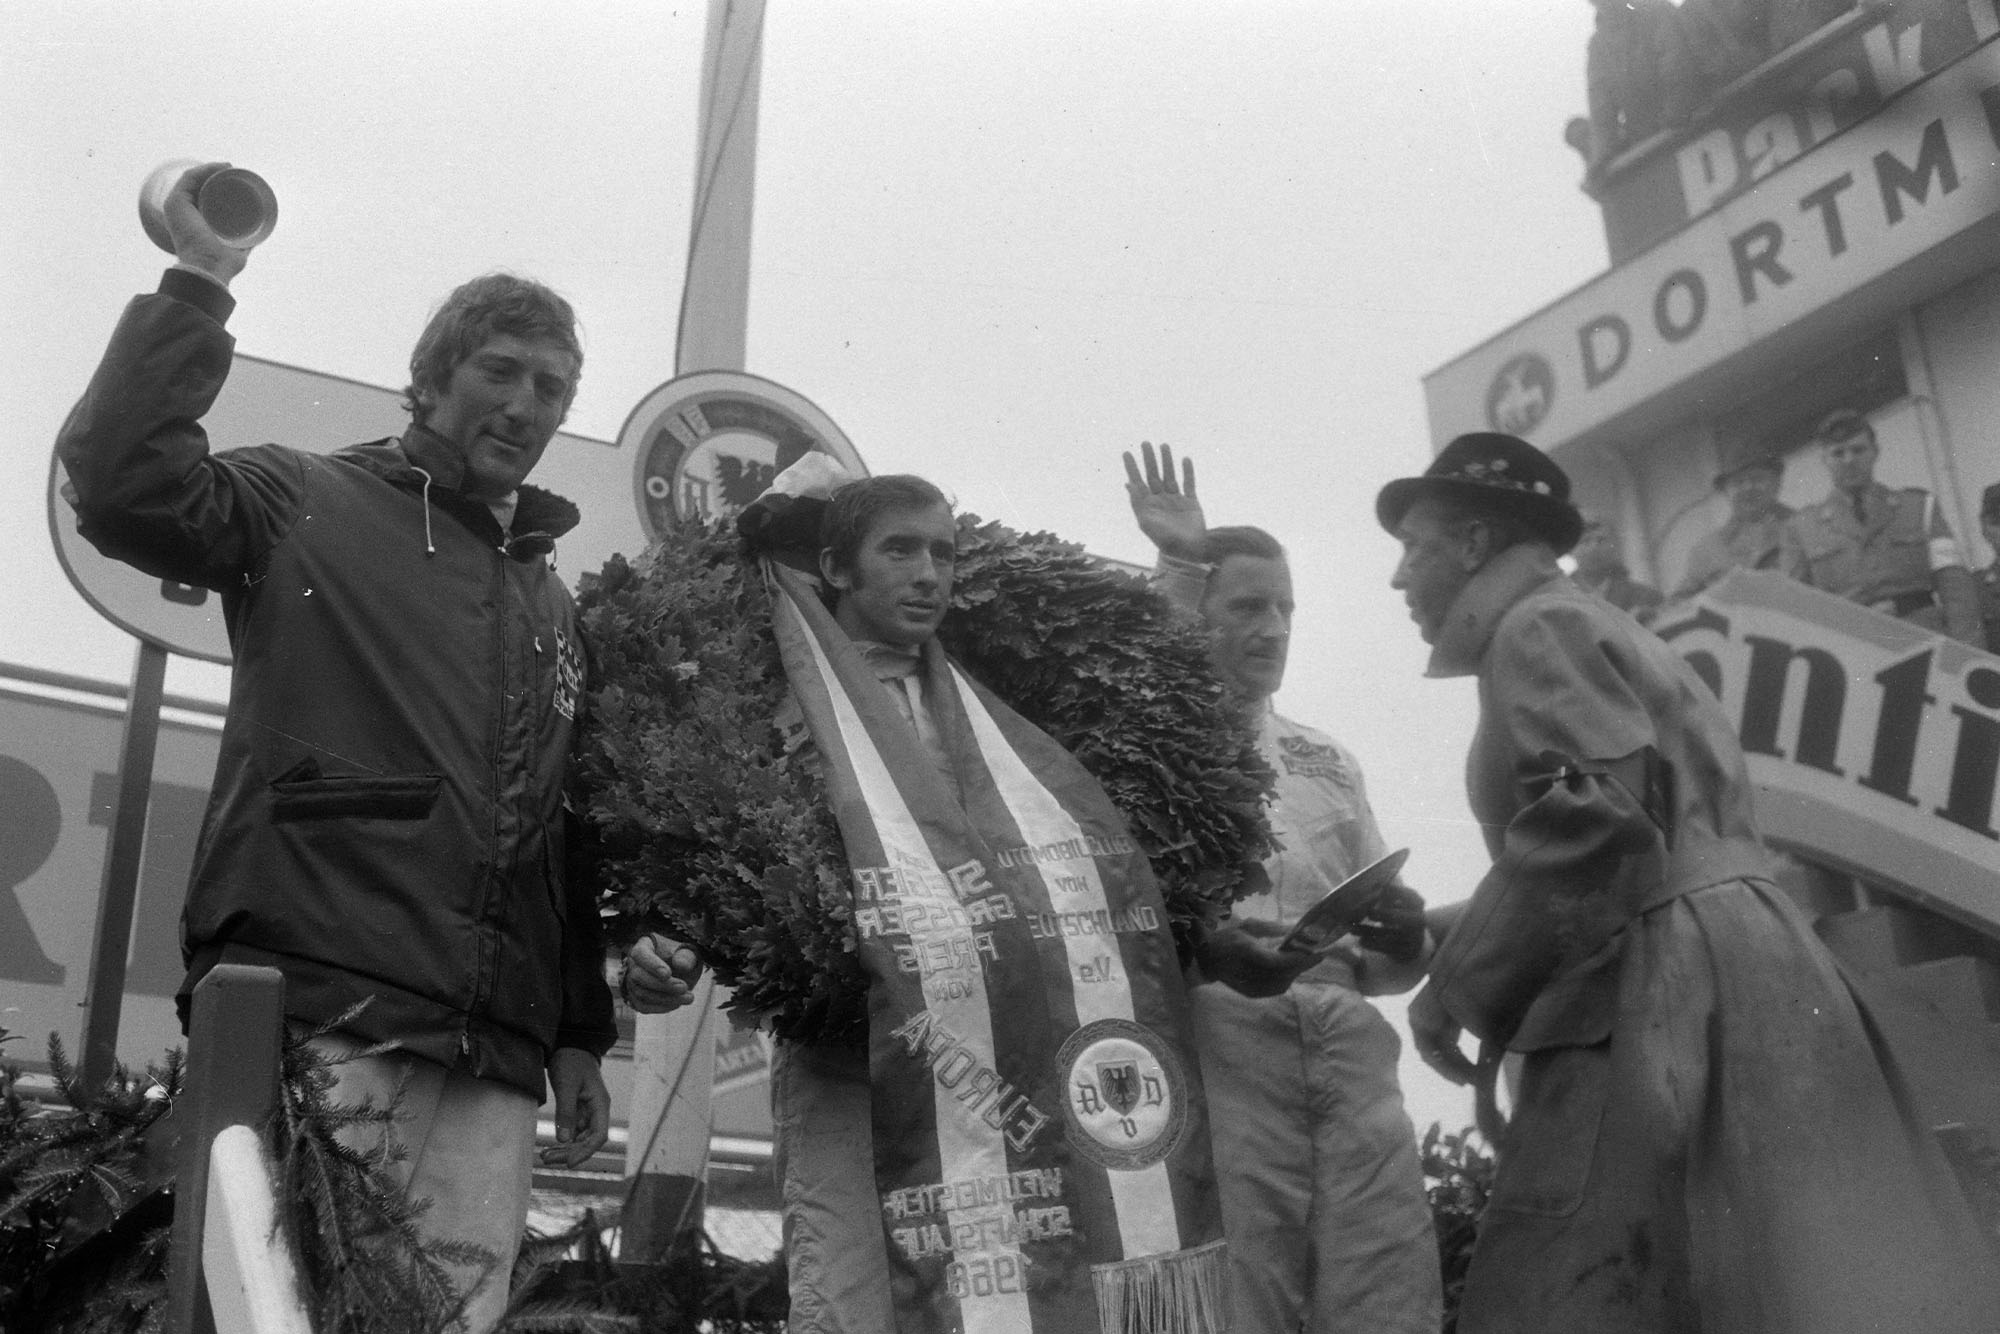 ackie Stewart, 1st position, celebrates victory on the podium with Graham Hill, 2nd position, and Jochen Rindt, 3rd position.